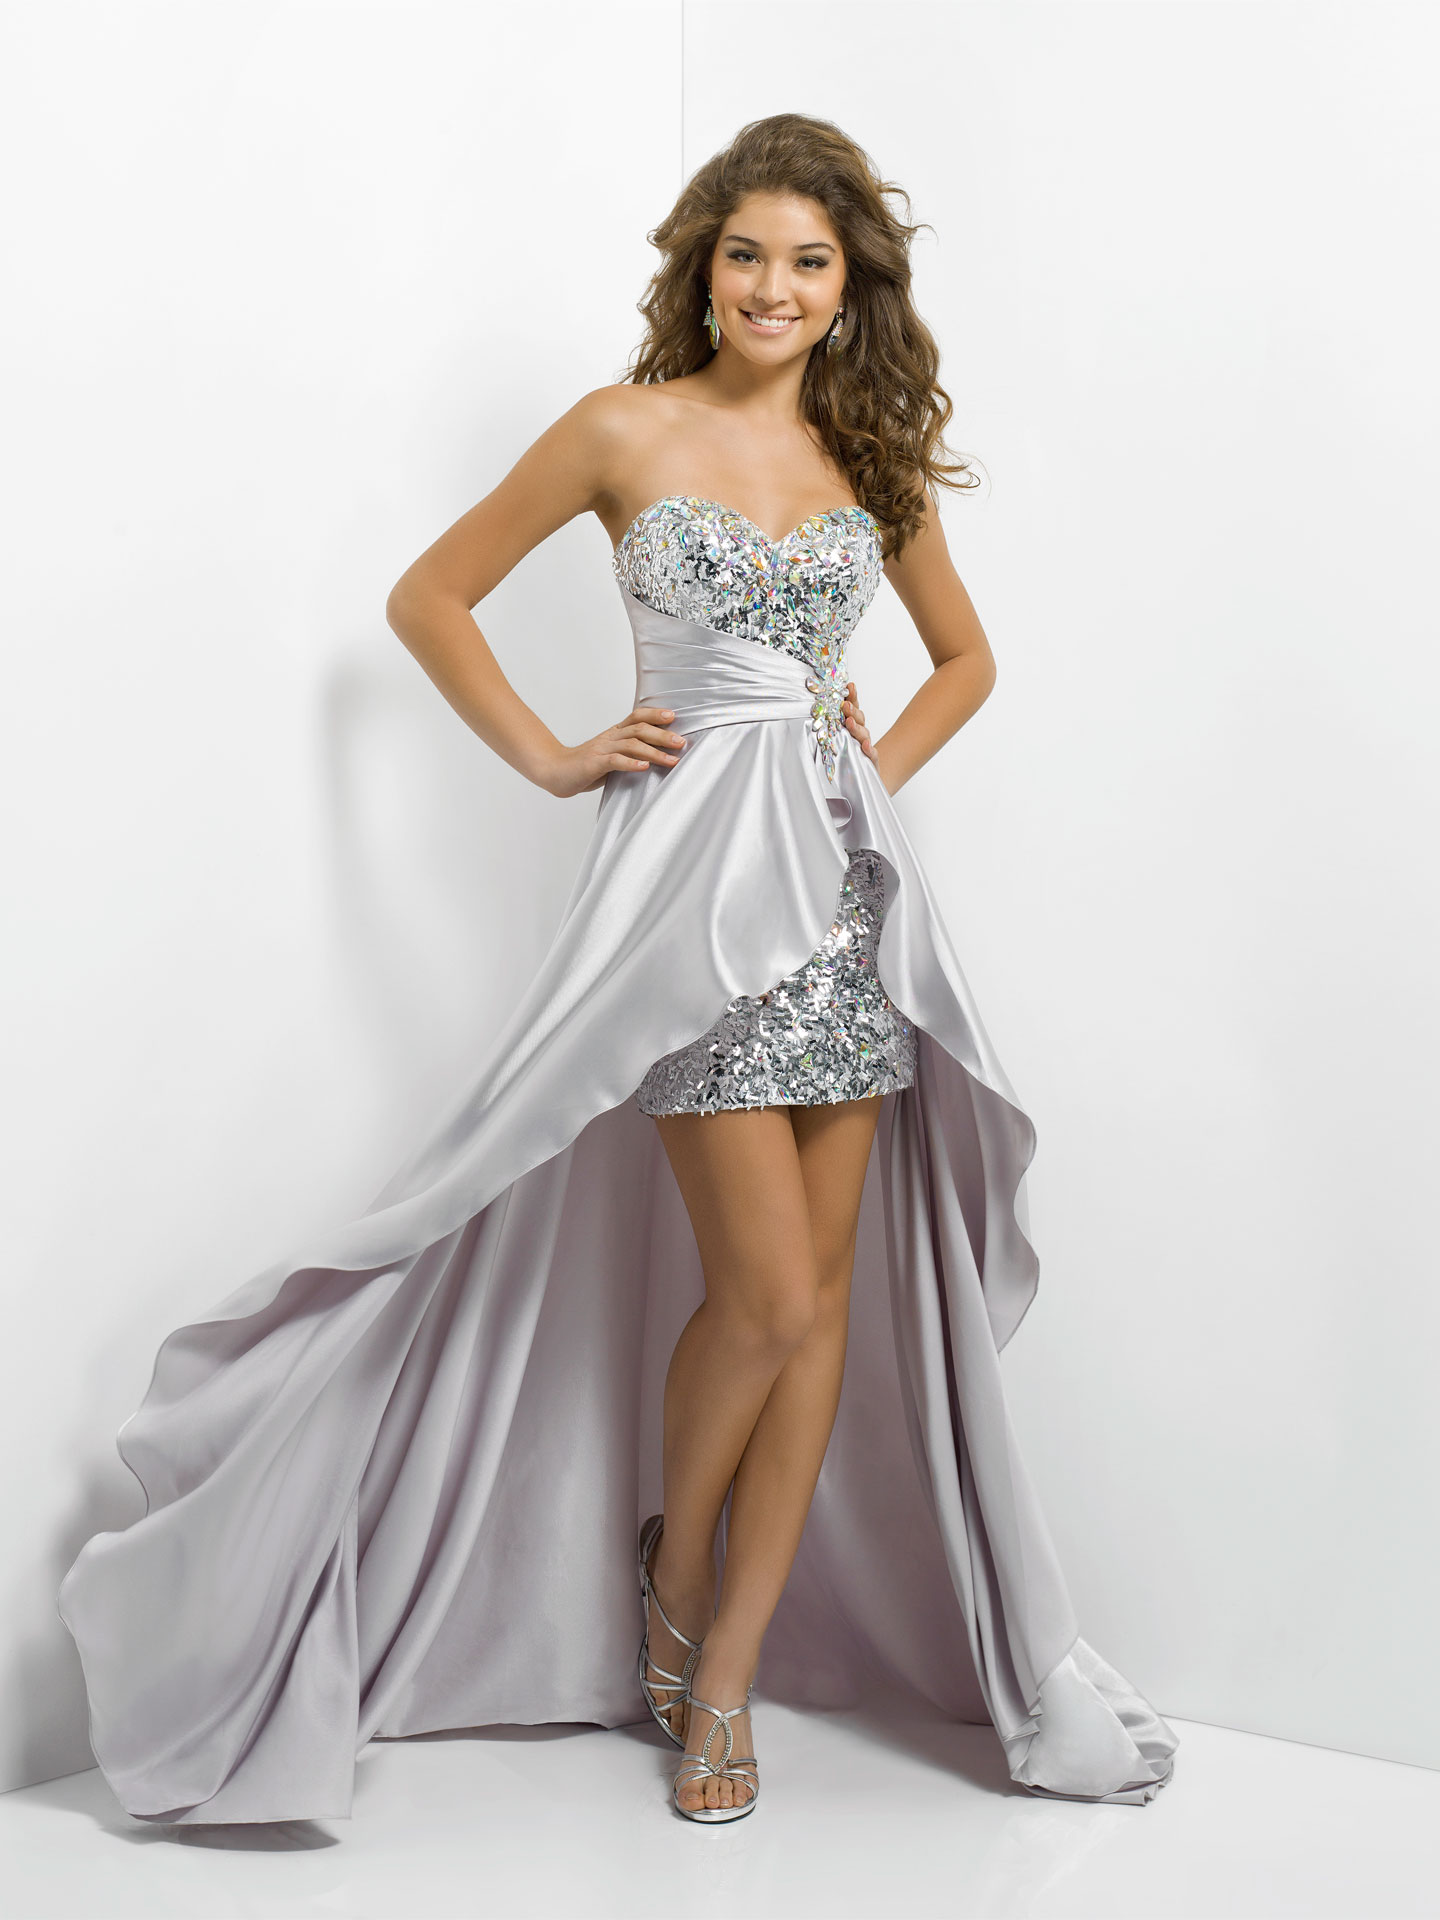 The Best Gold Prom Dresses 2014 - Silver Prom Dresses 2014